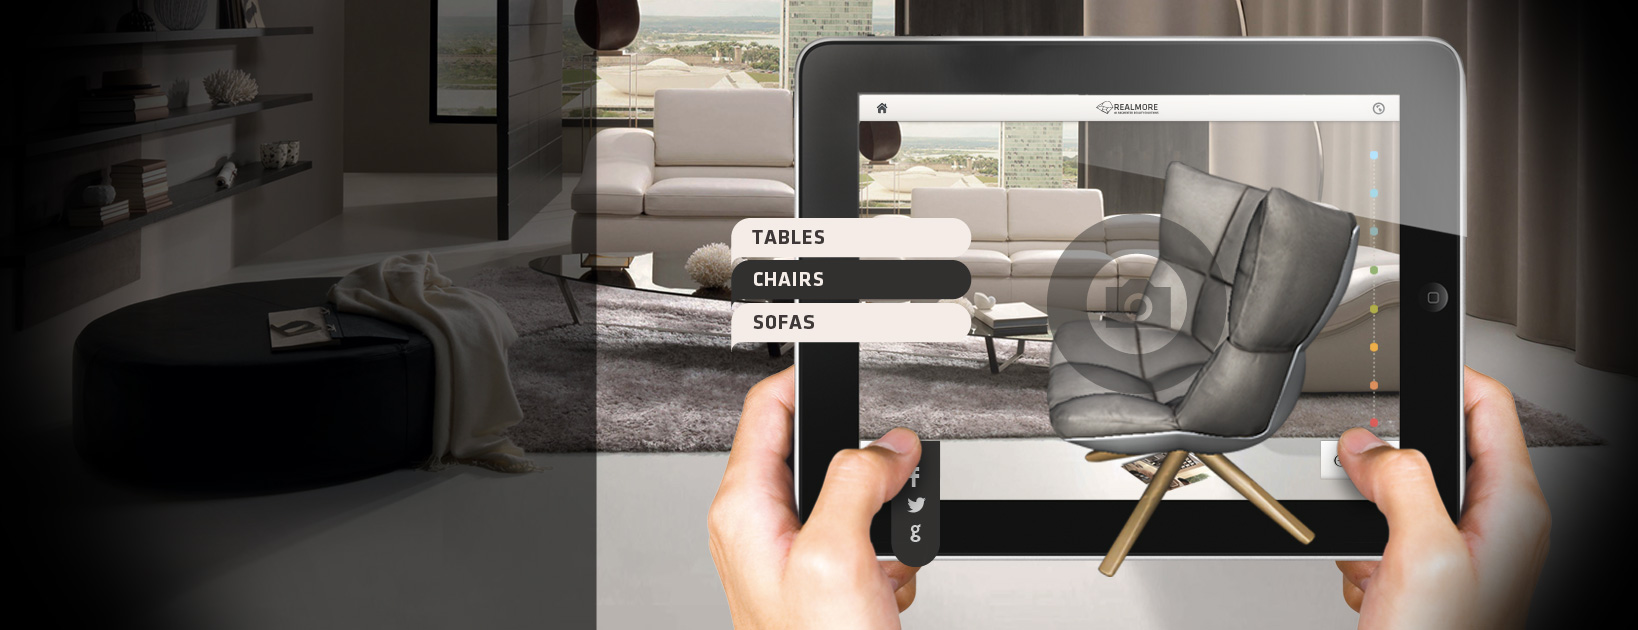 Home Remodeling Made Easy: There's an App for That